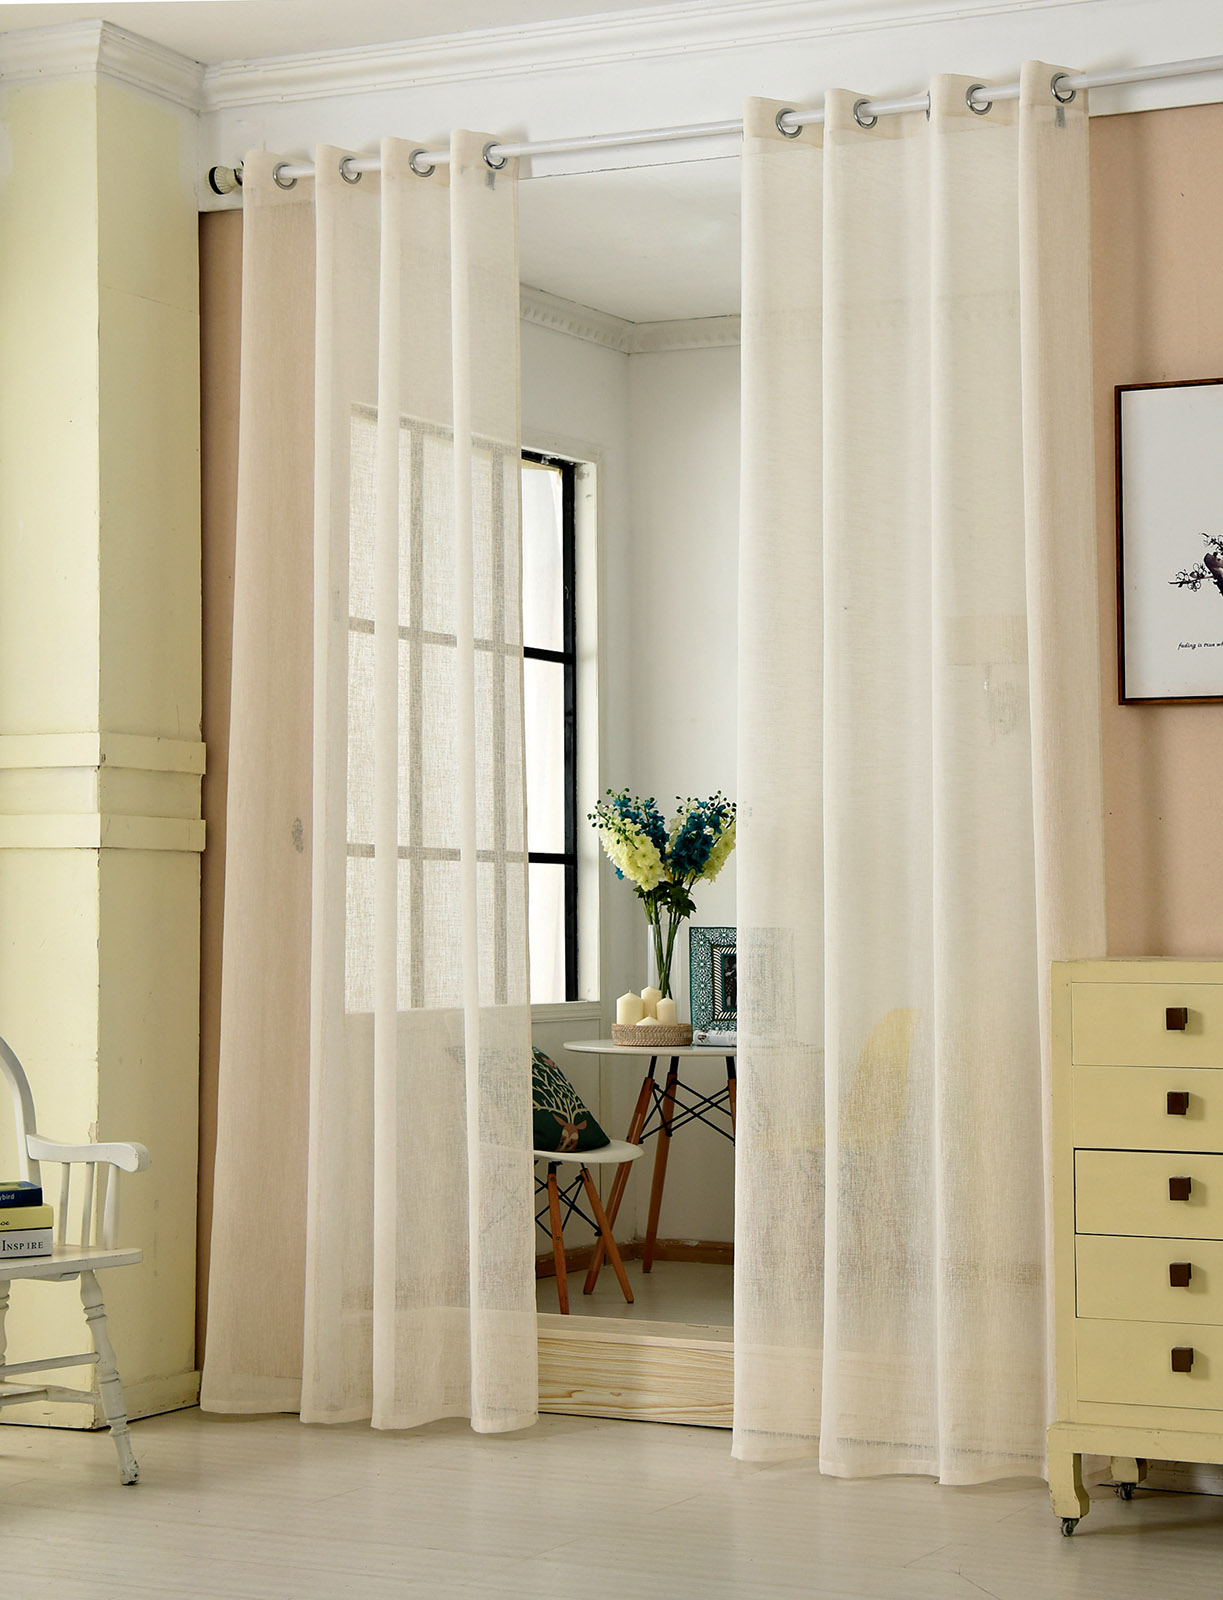 2x gardine senschal transparent mit sen leinenoptik 140x175cm creme vh5857cm 2 ebay. Black Bedroom Furniture Sets. Home Design Ideas